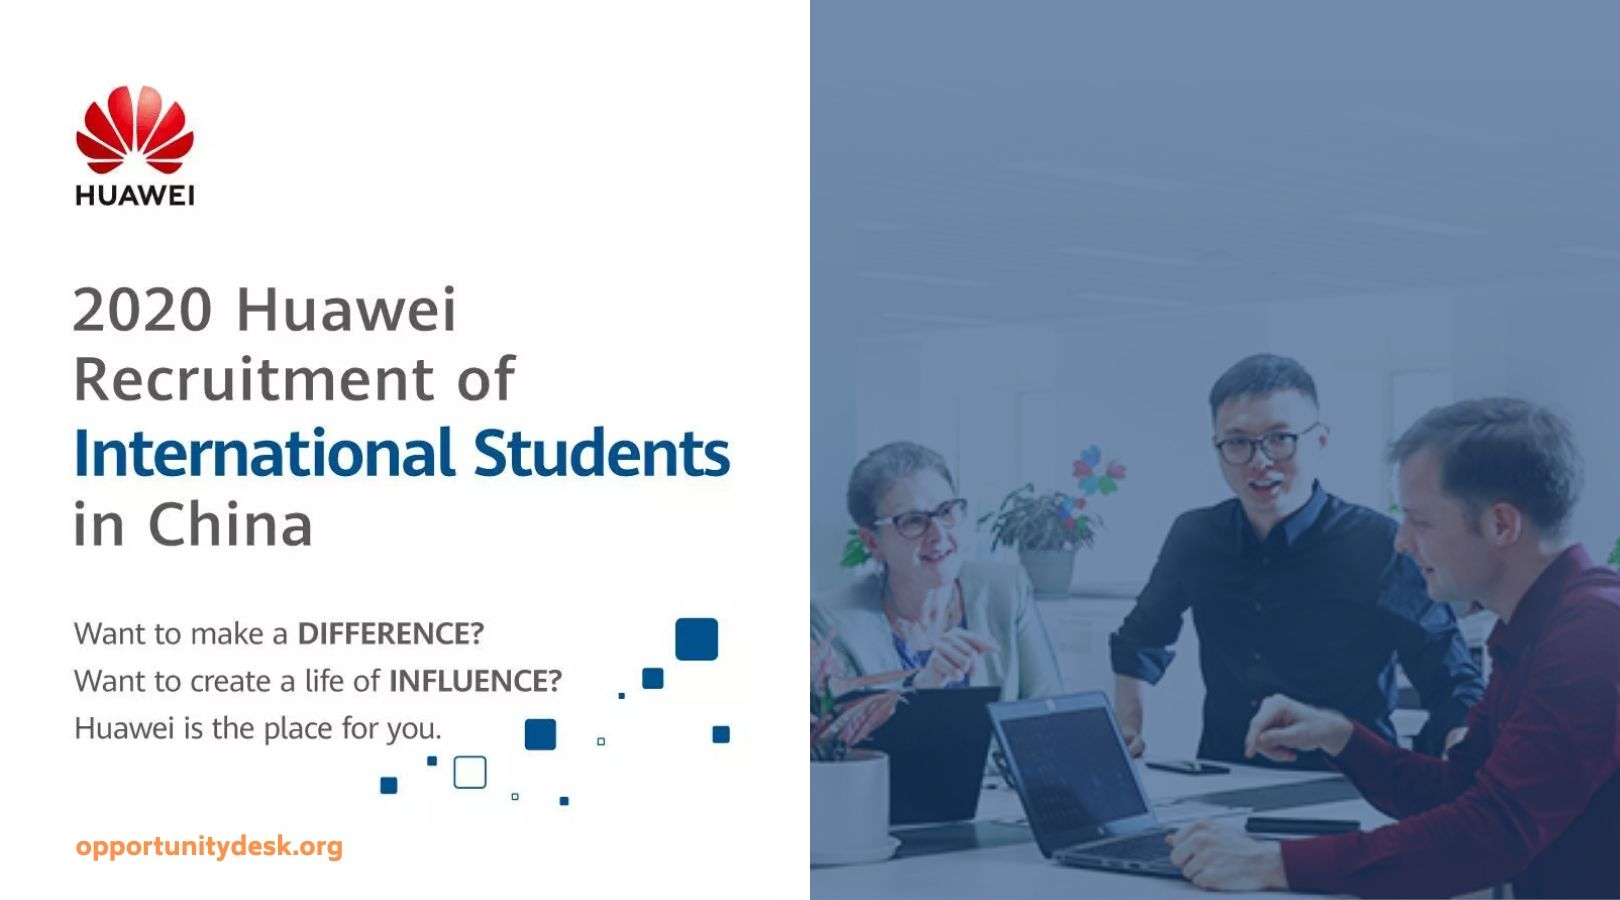 Huawei Recruitment of International Students in China 2020